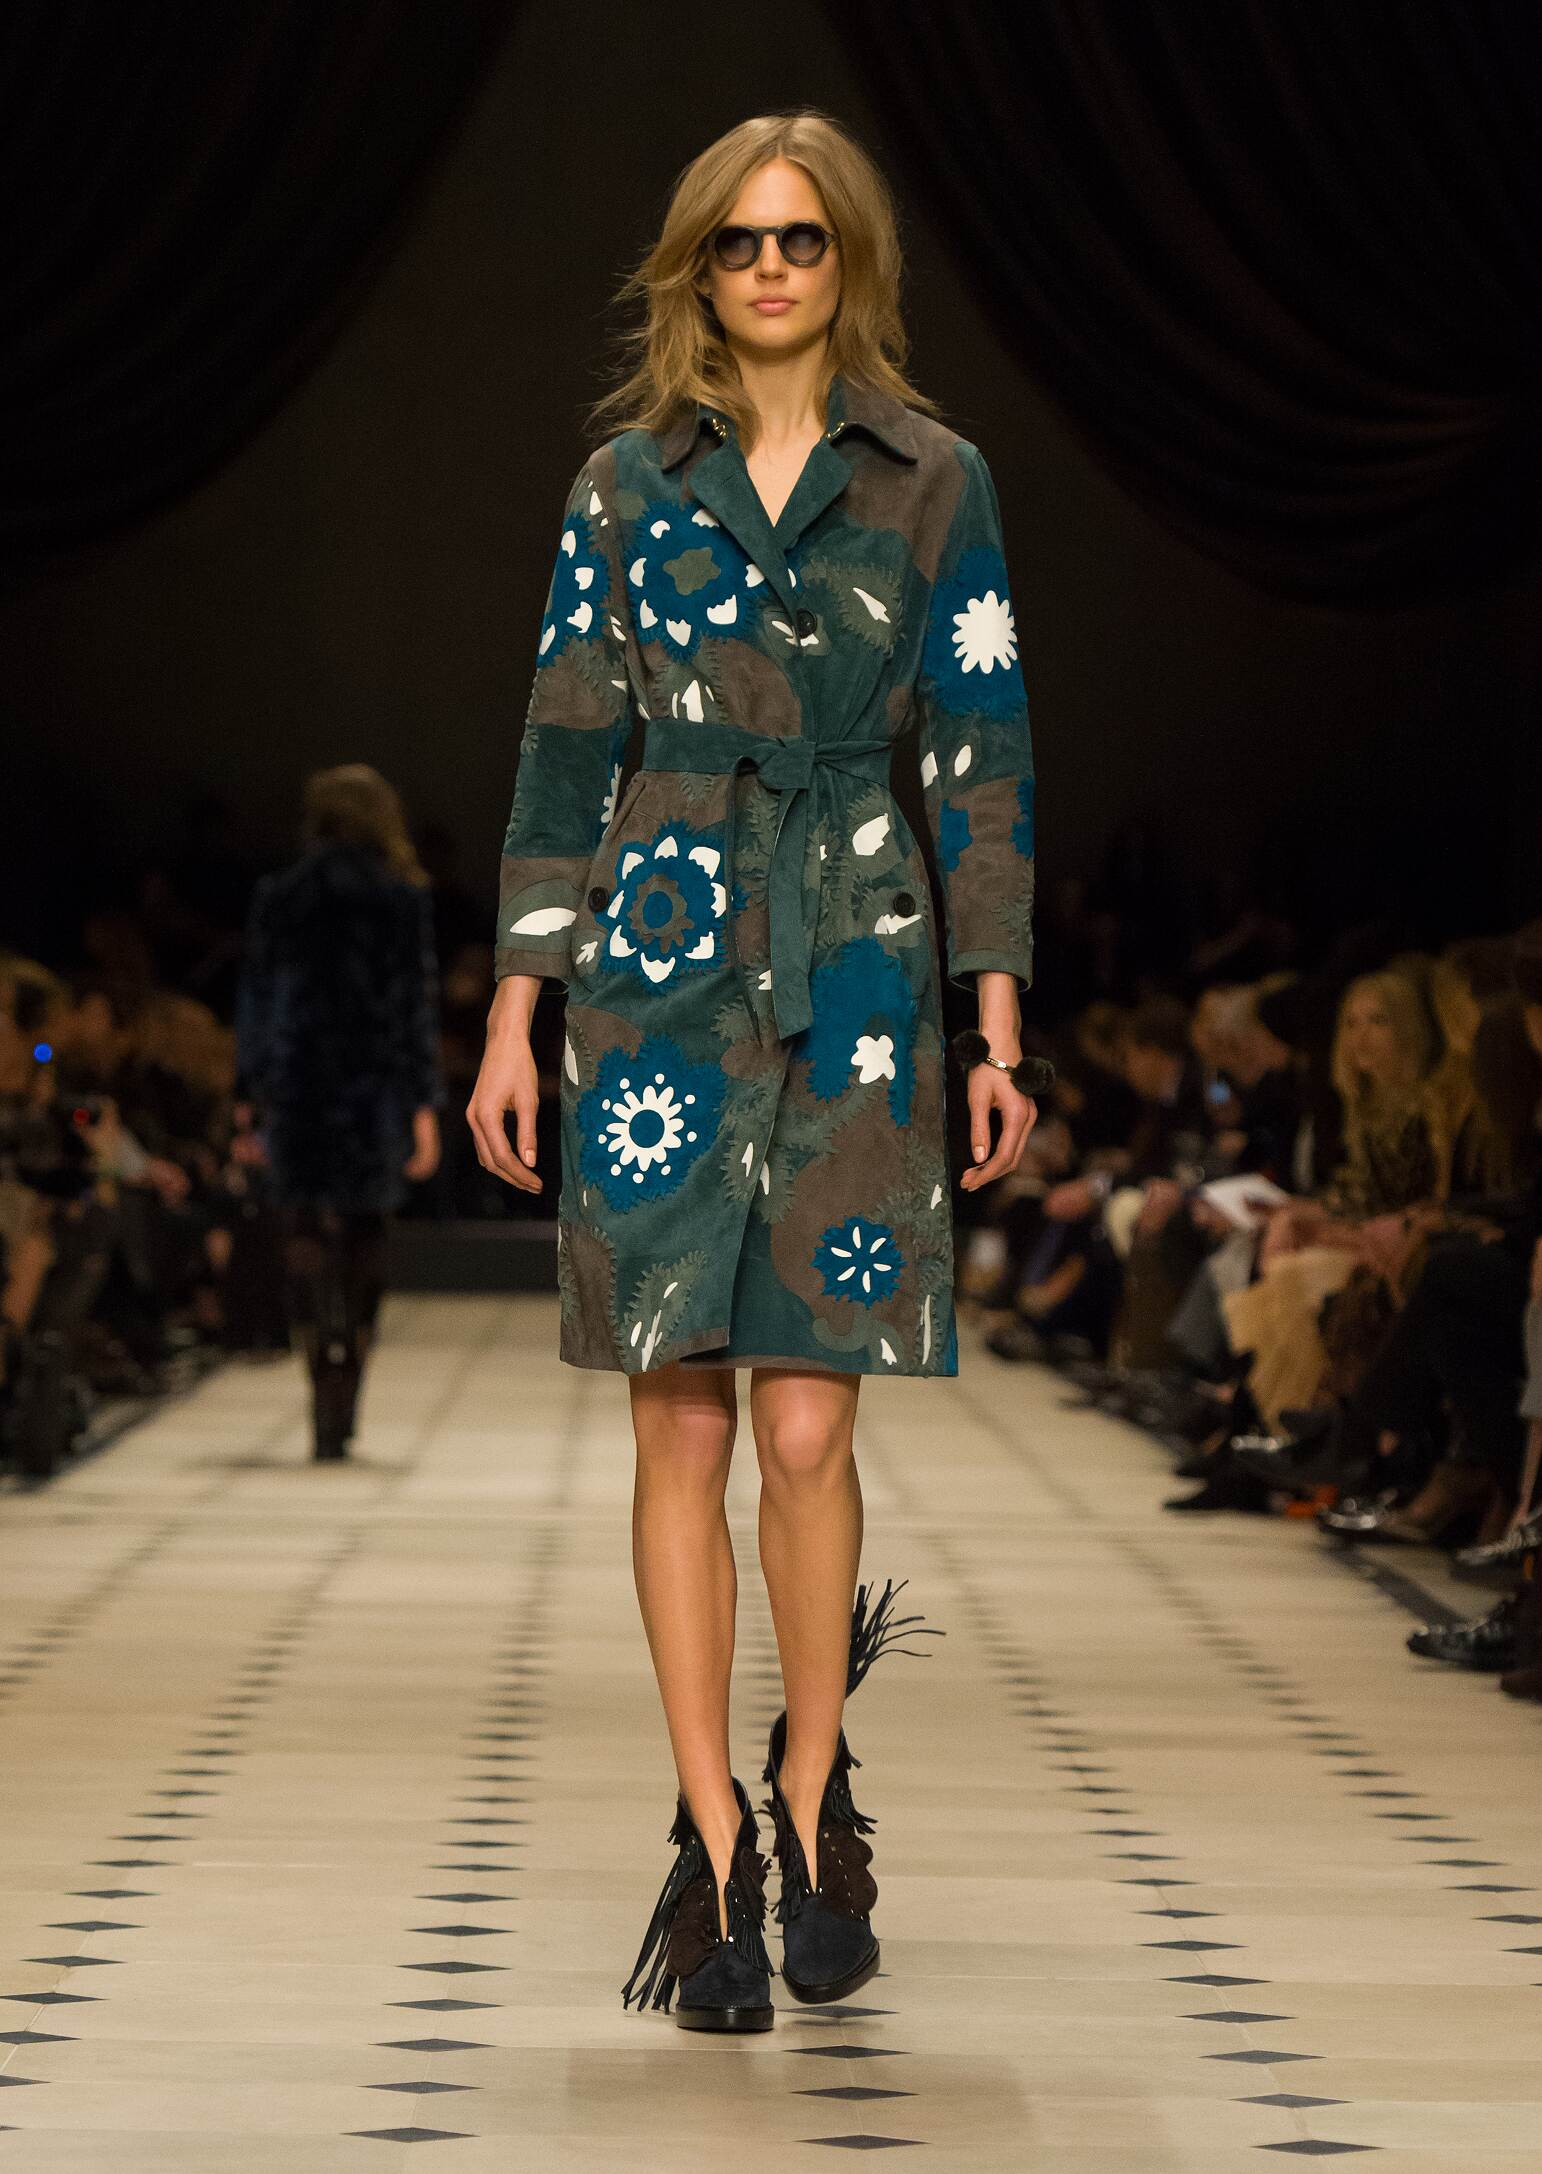 Burberry Prorsum Collection Fall 2015 Catwalk